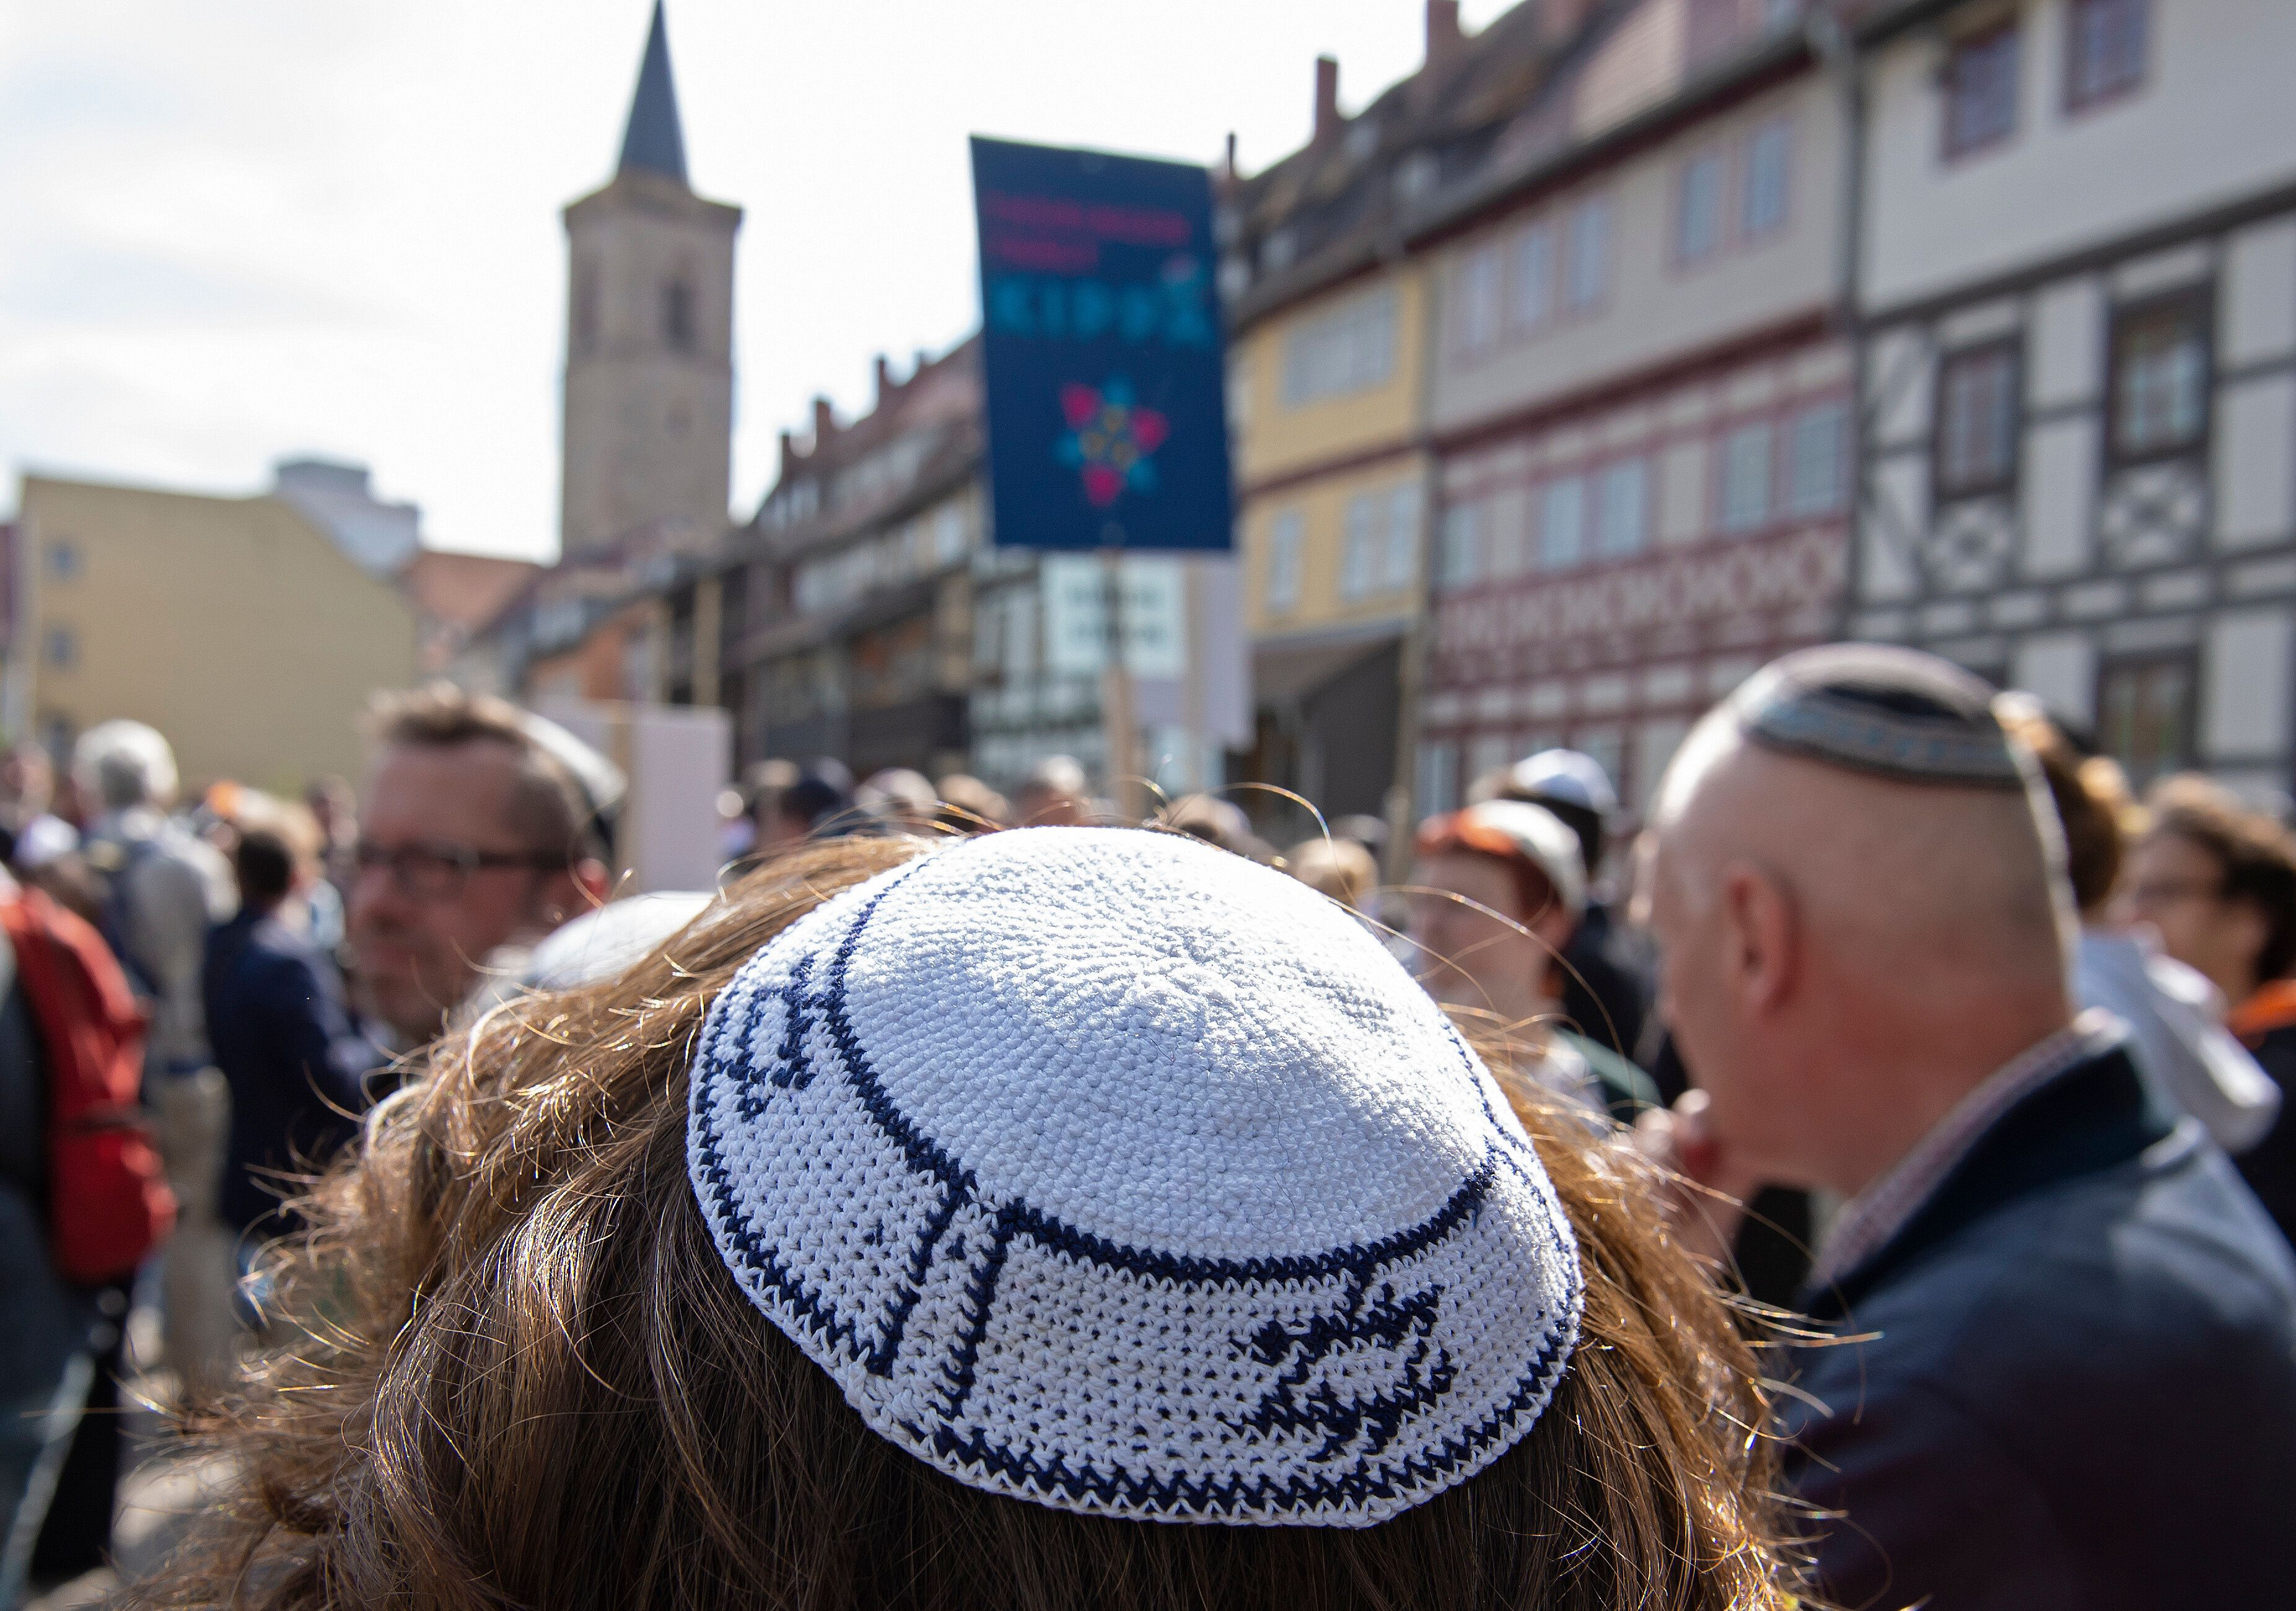 People of different faiths wear the Jewish kippah during a demonstration against antisemitism in Germany in Erfurt, Germany, Wednesday, April 25, 2018. (AP Photo/Jens Meyer)